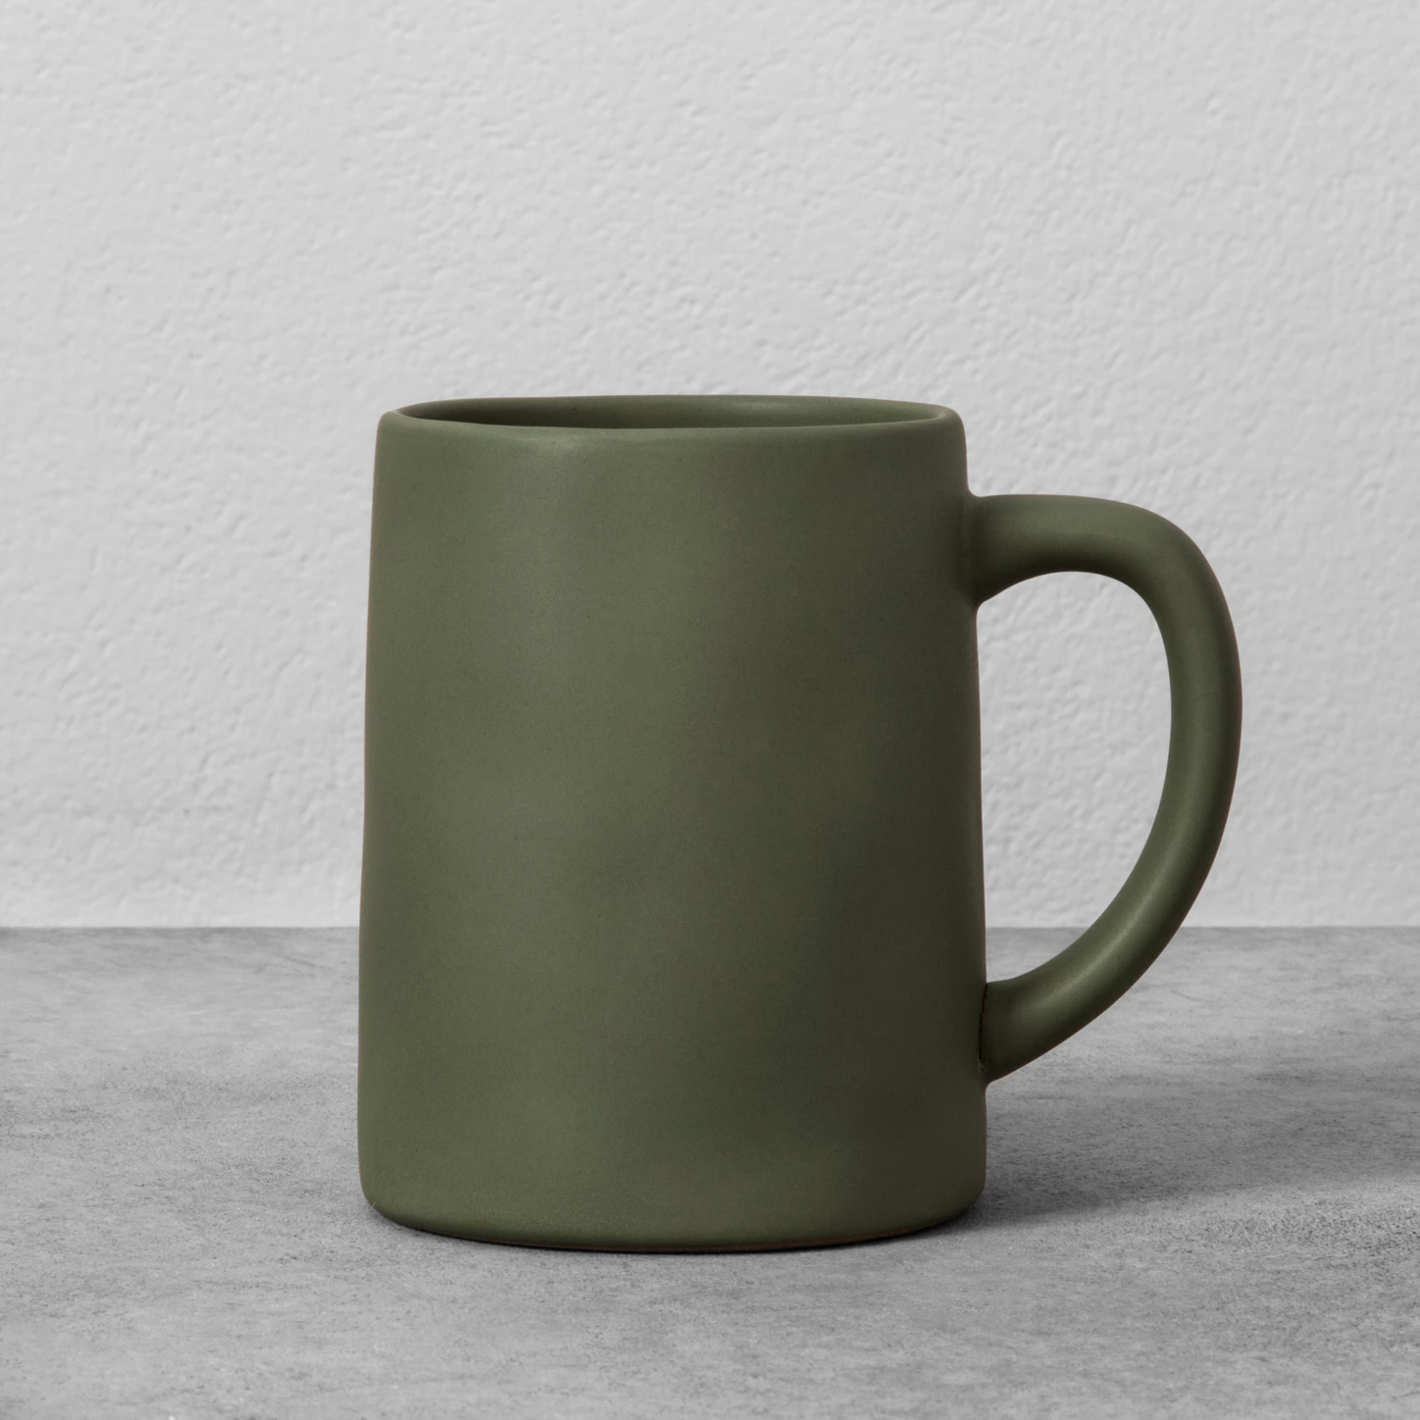 Hearth & Hand Stoneware Mug